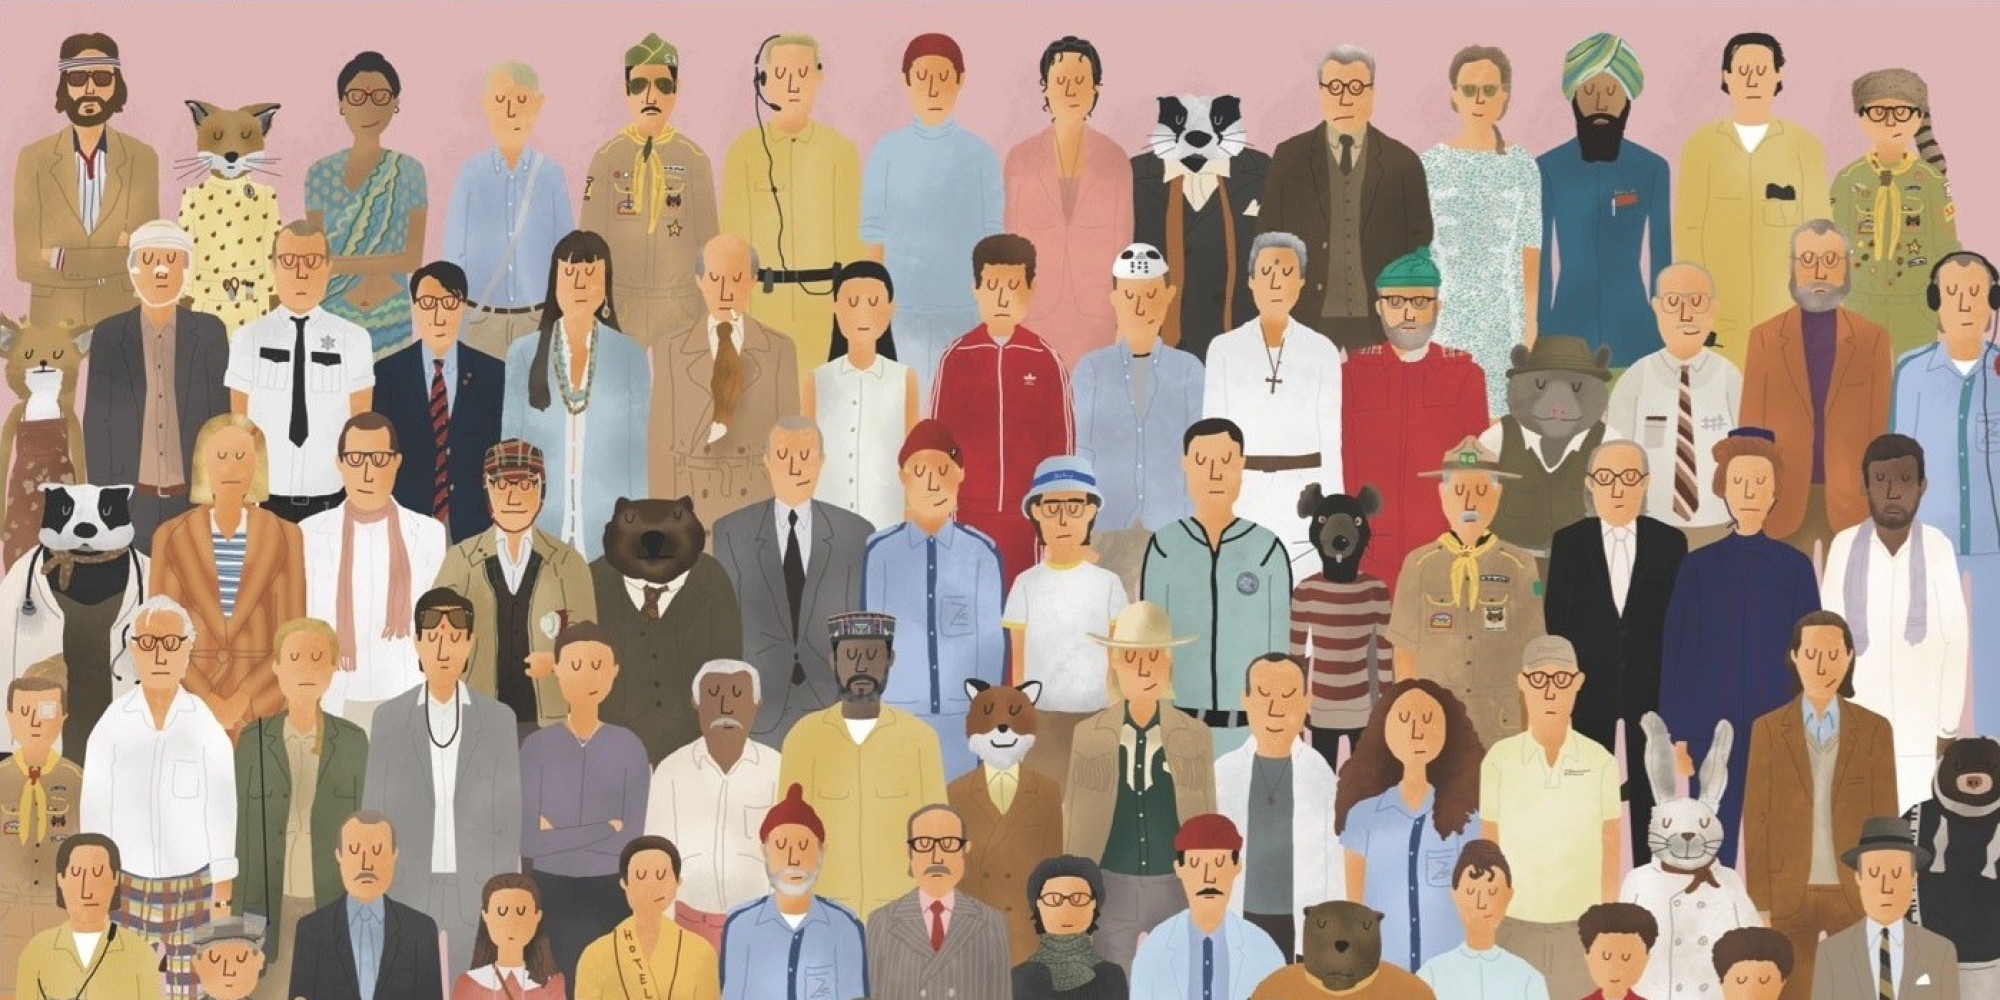 Character Design Jobs Australia : Awesome art from new wes anderson book images huffpost